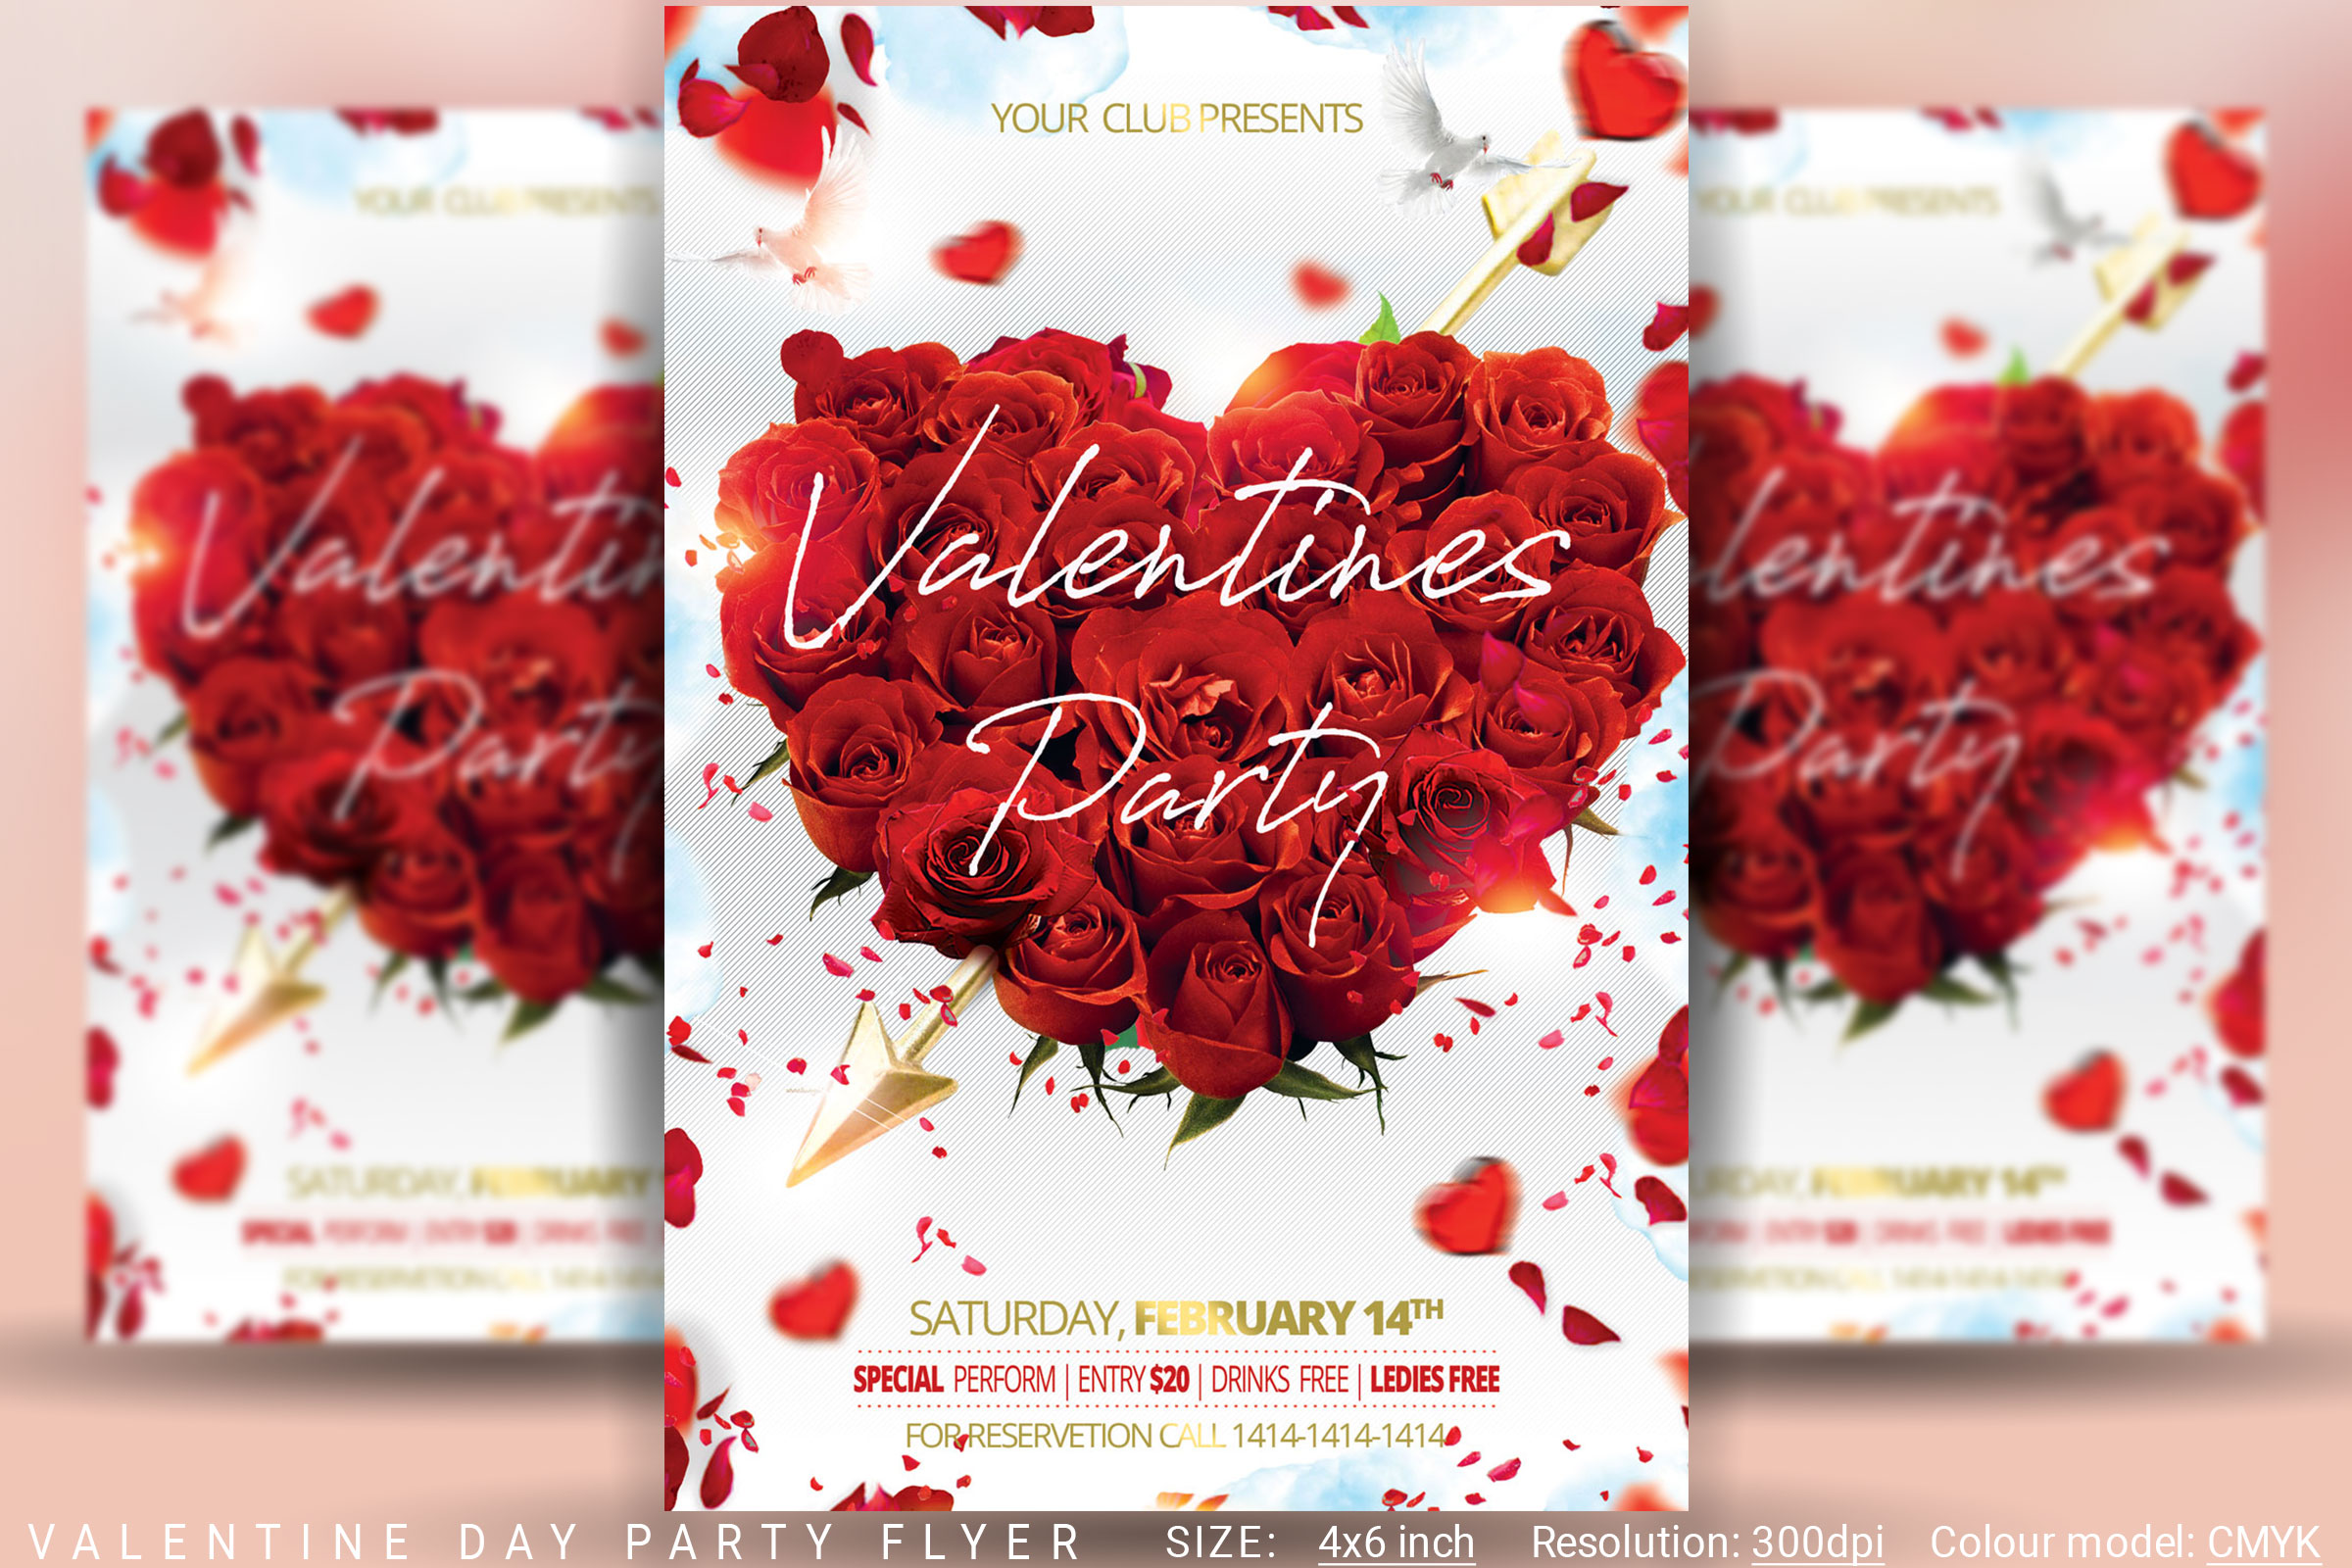 Valentine Day Party Flyer example image 1